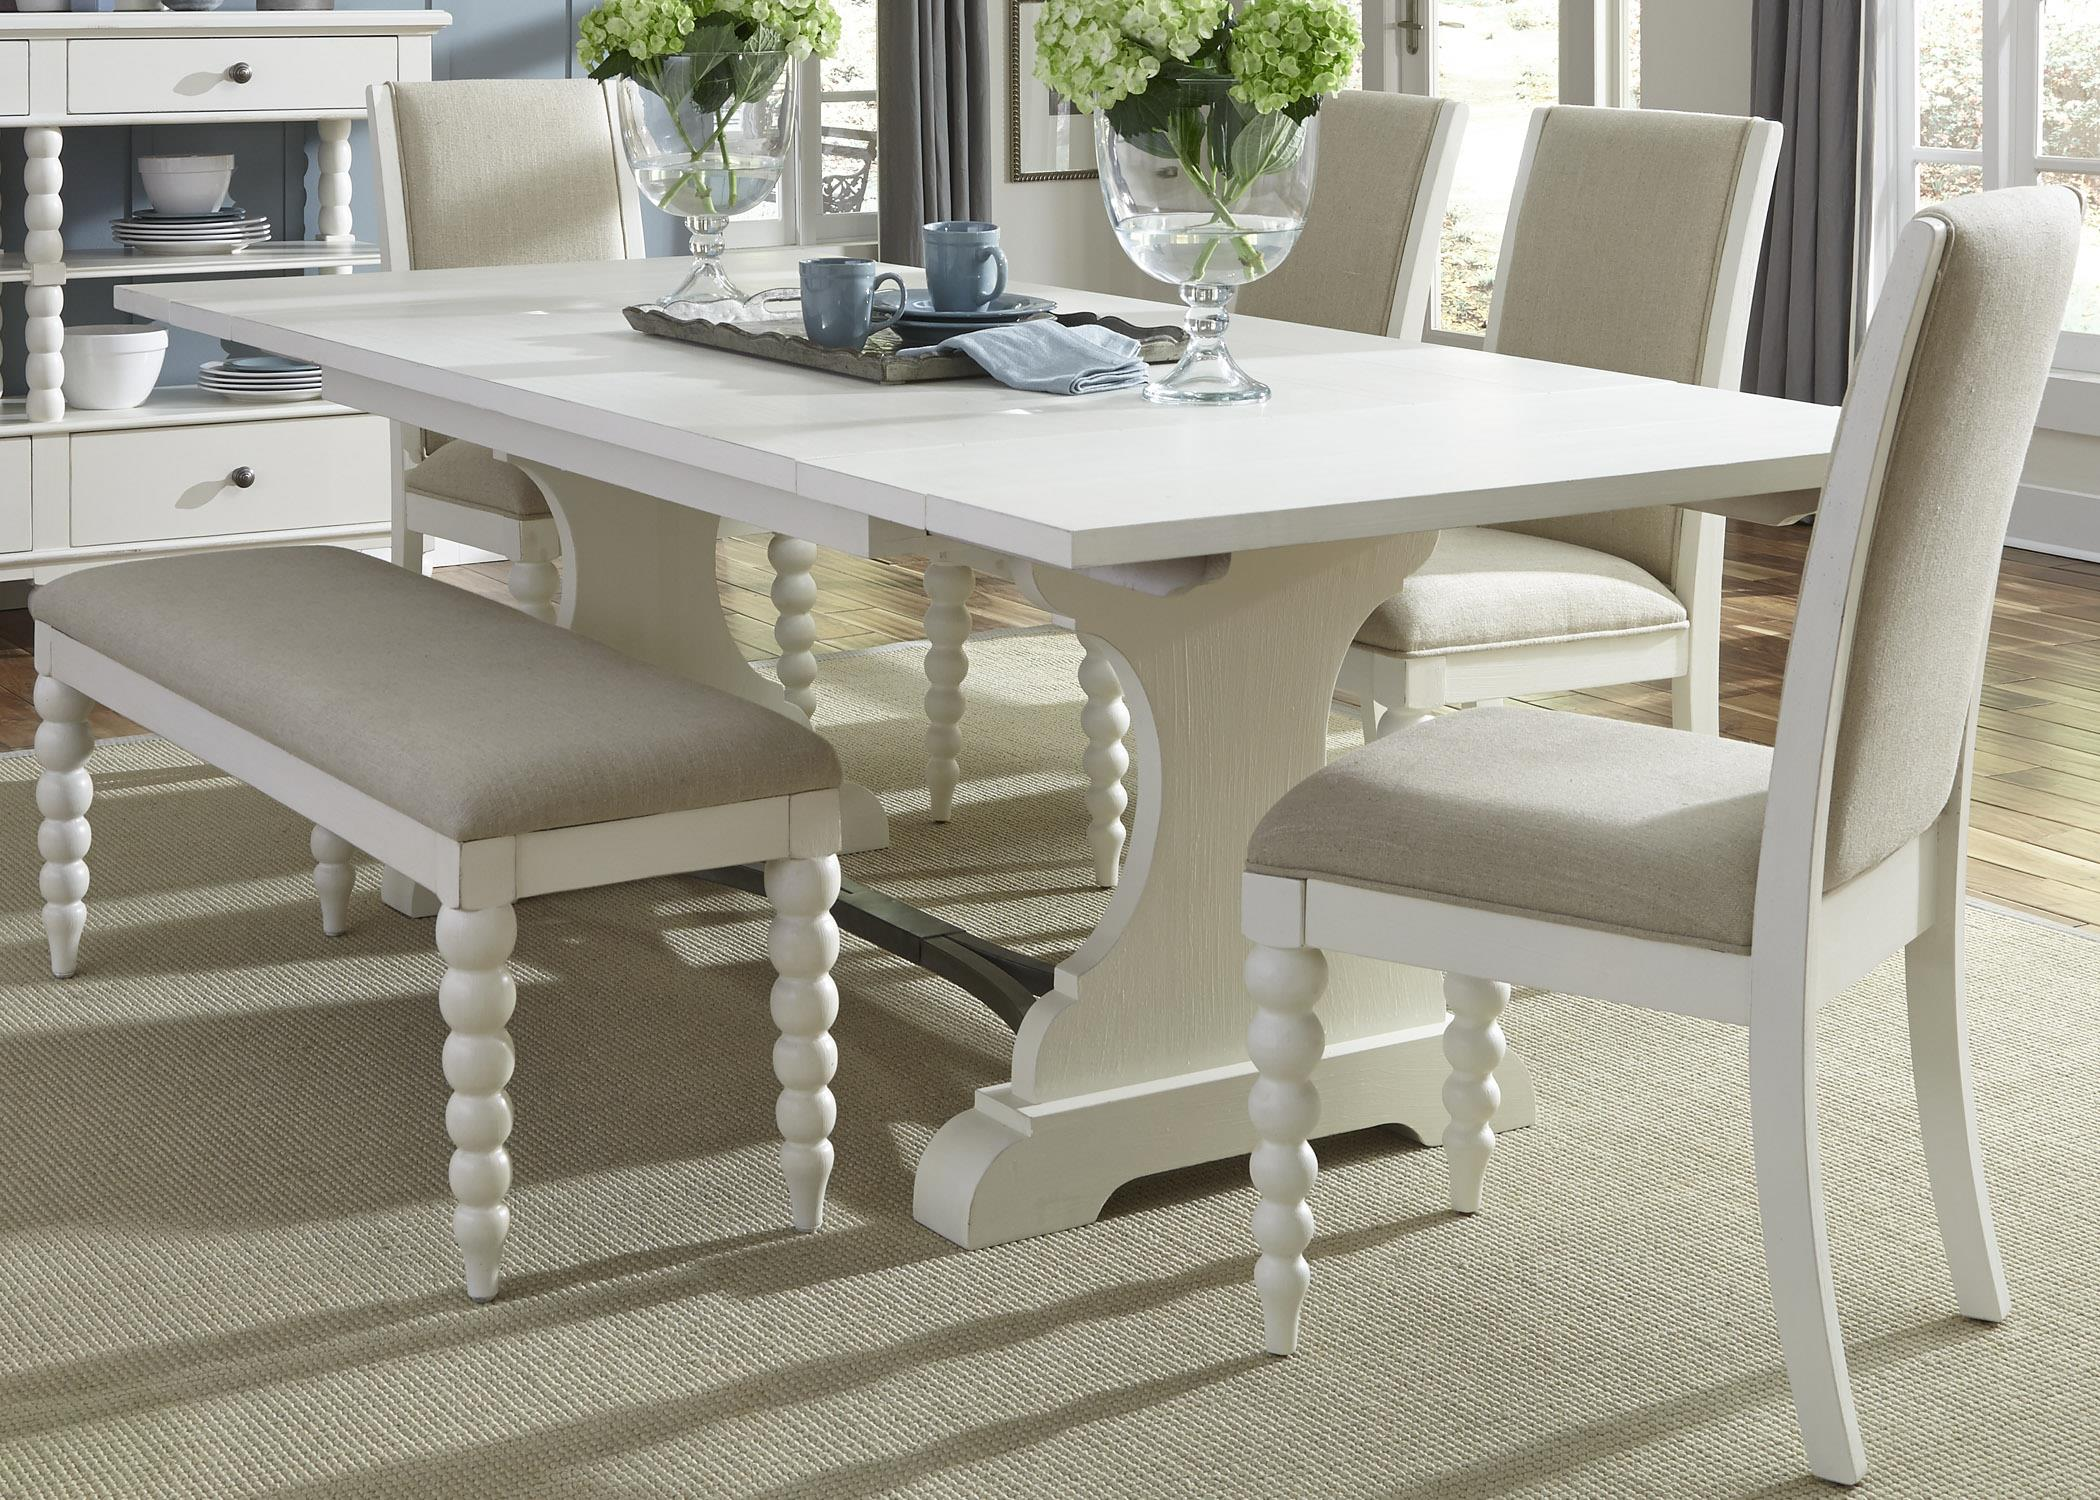 Liberty Furniture Harbor View Trestle Table and Side Chair and Bench Set - Item Number: 631-DR-O6TRS